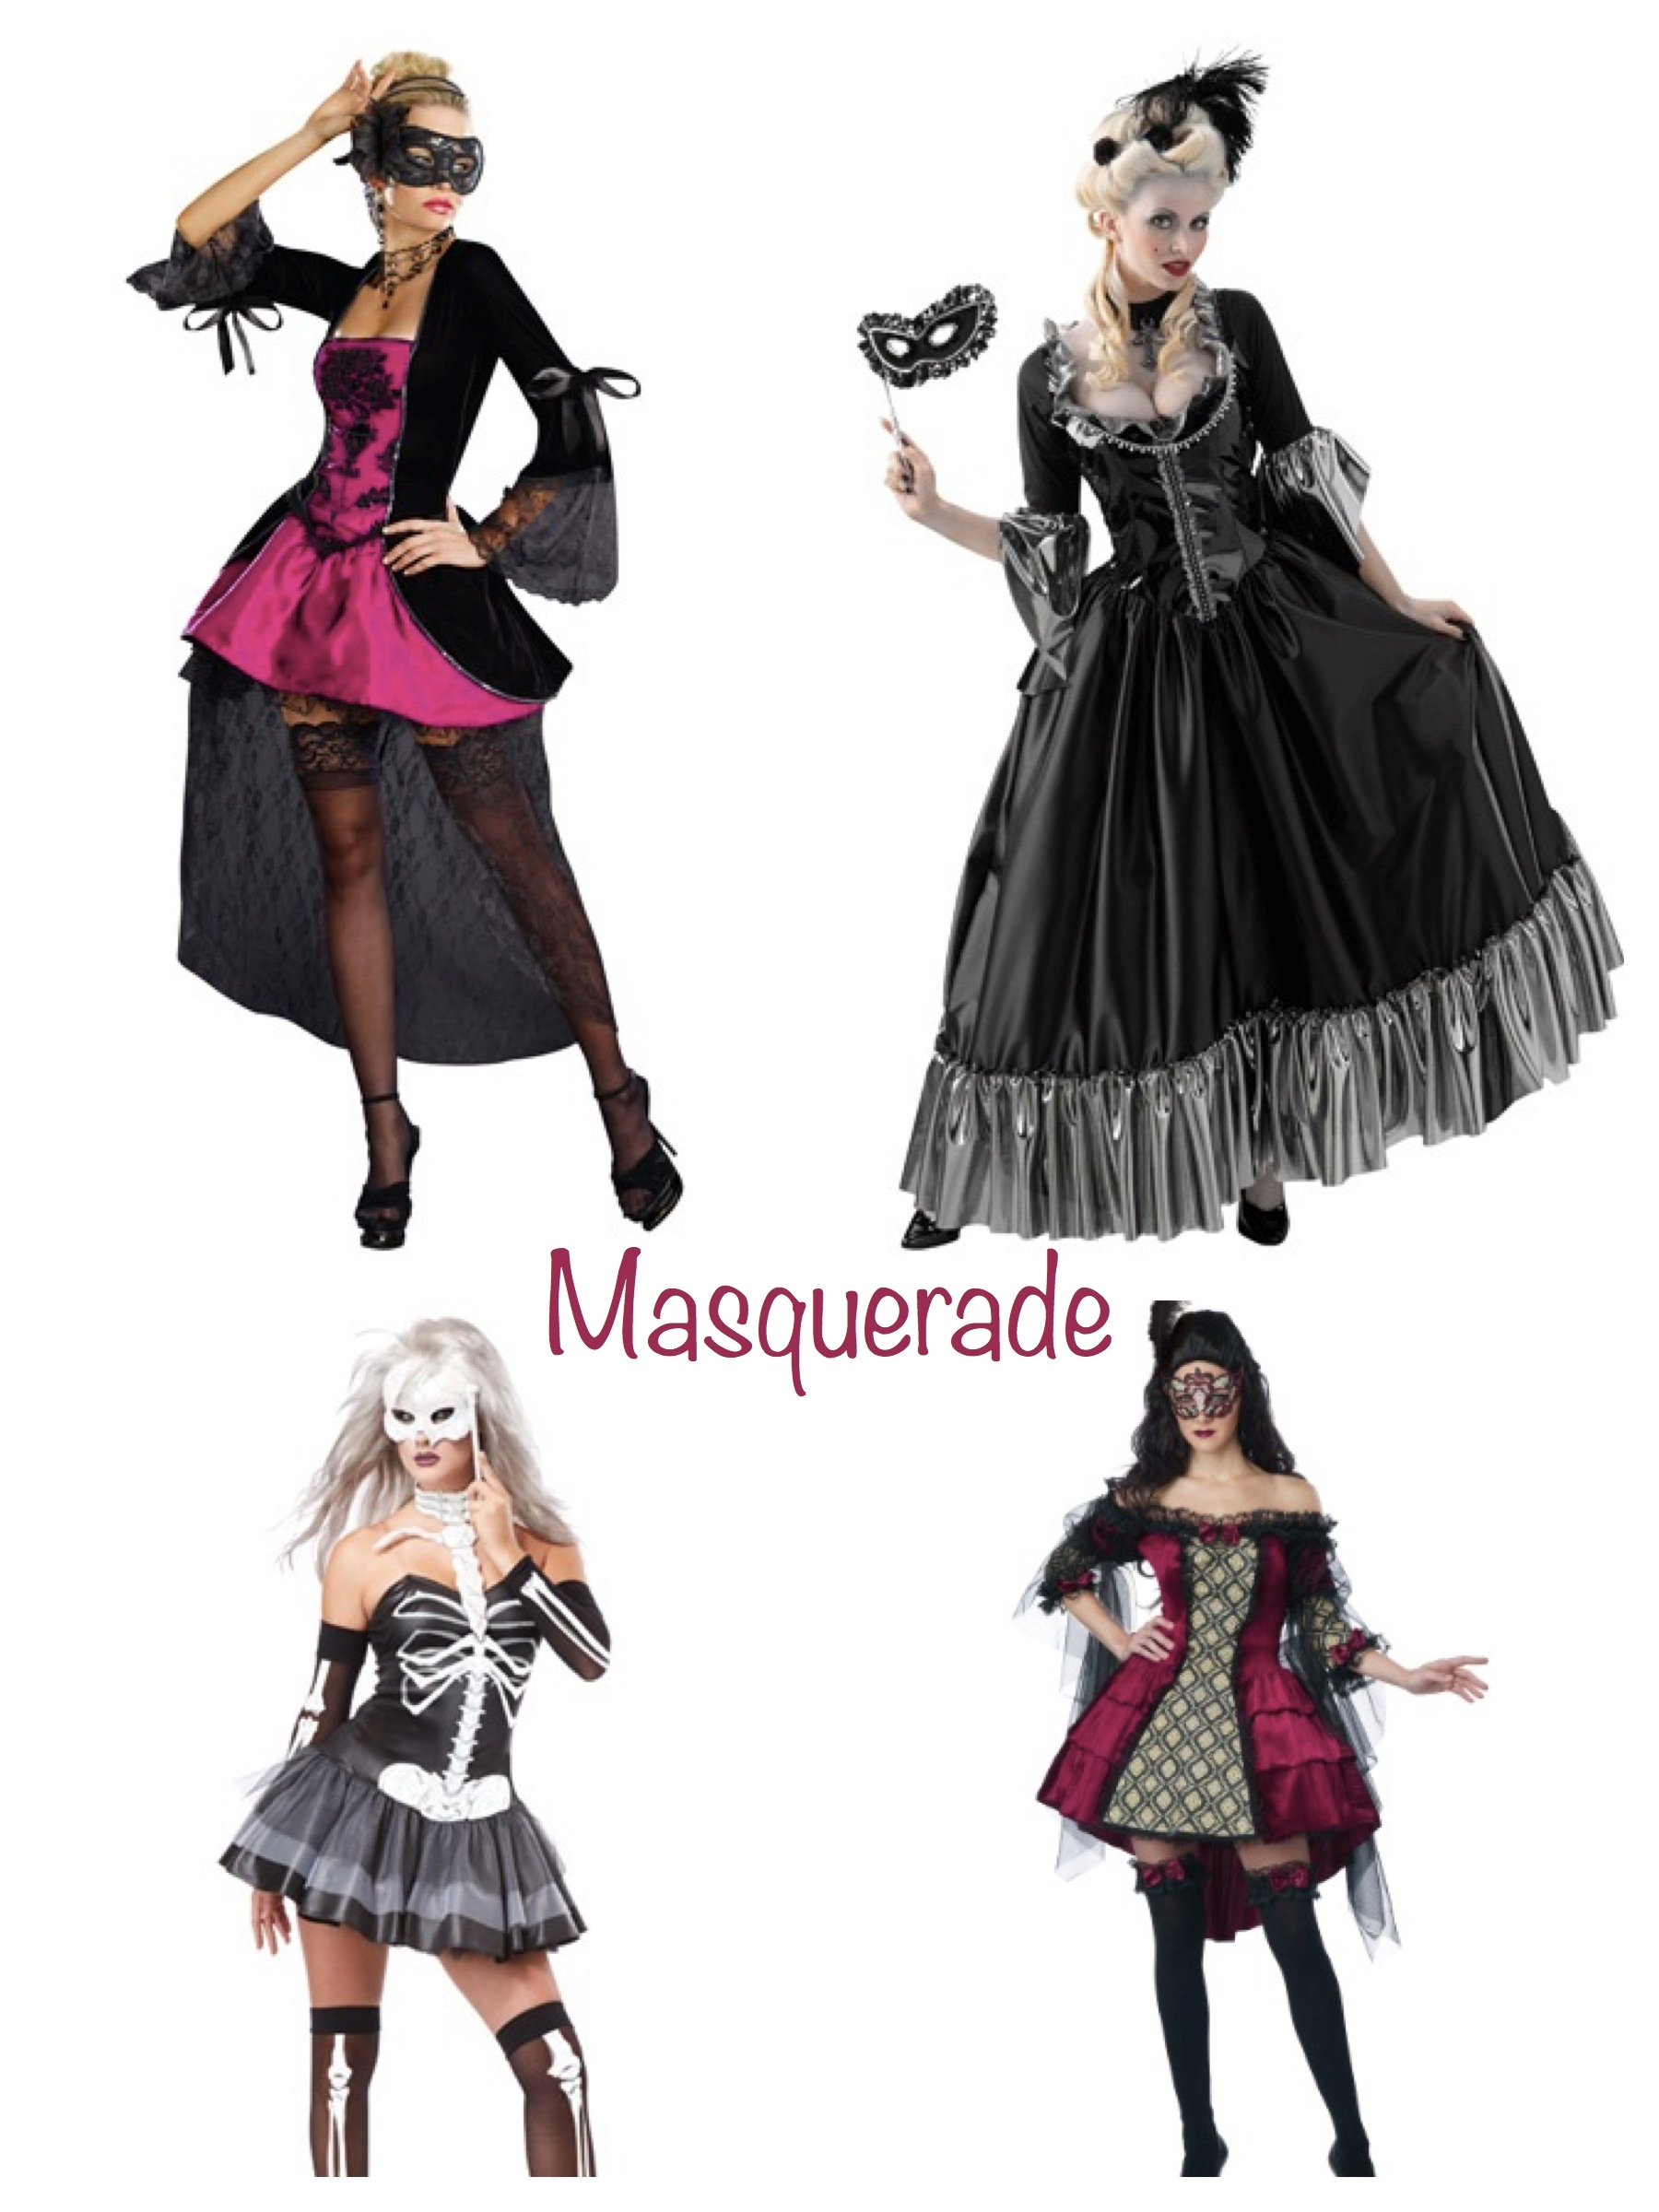 10 Fashionable Masquerade Outfit Ideas For Women %name 2020